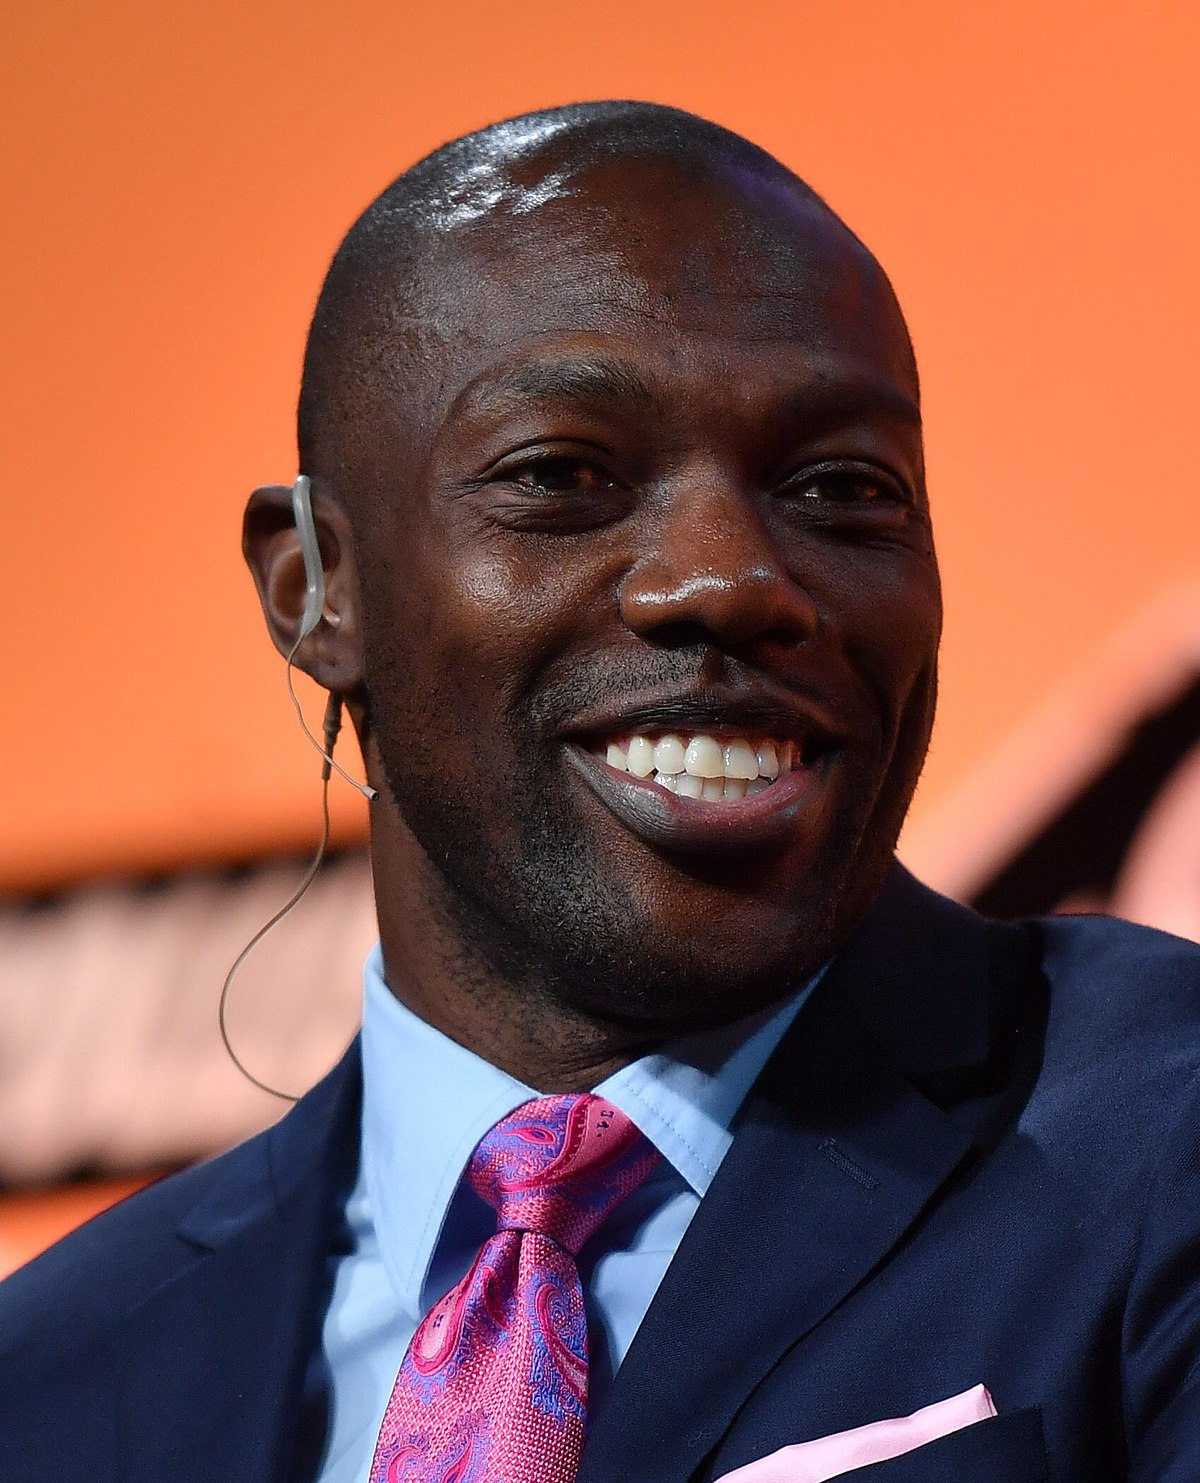 Terrell Owens, NFL Hall of Fame